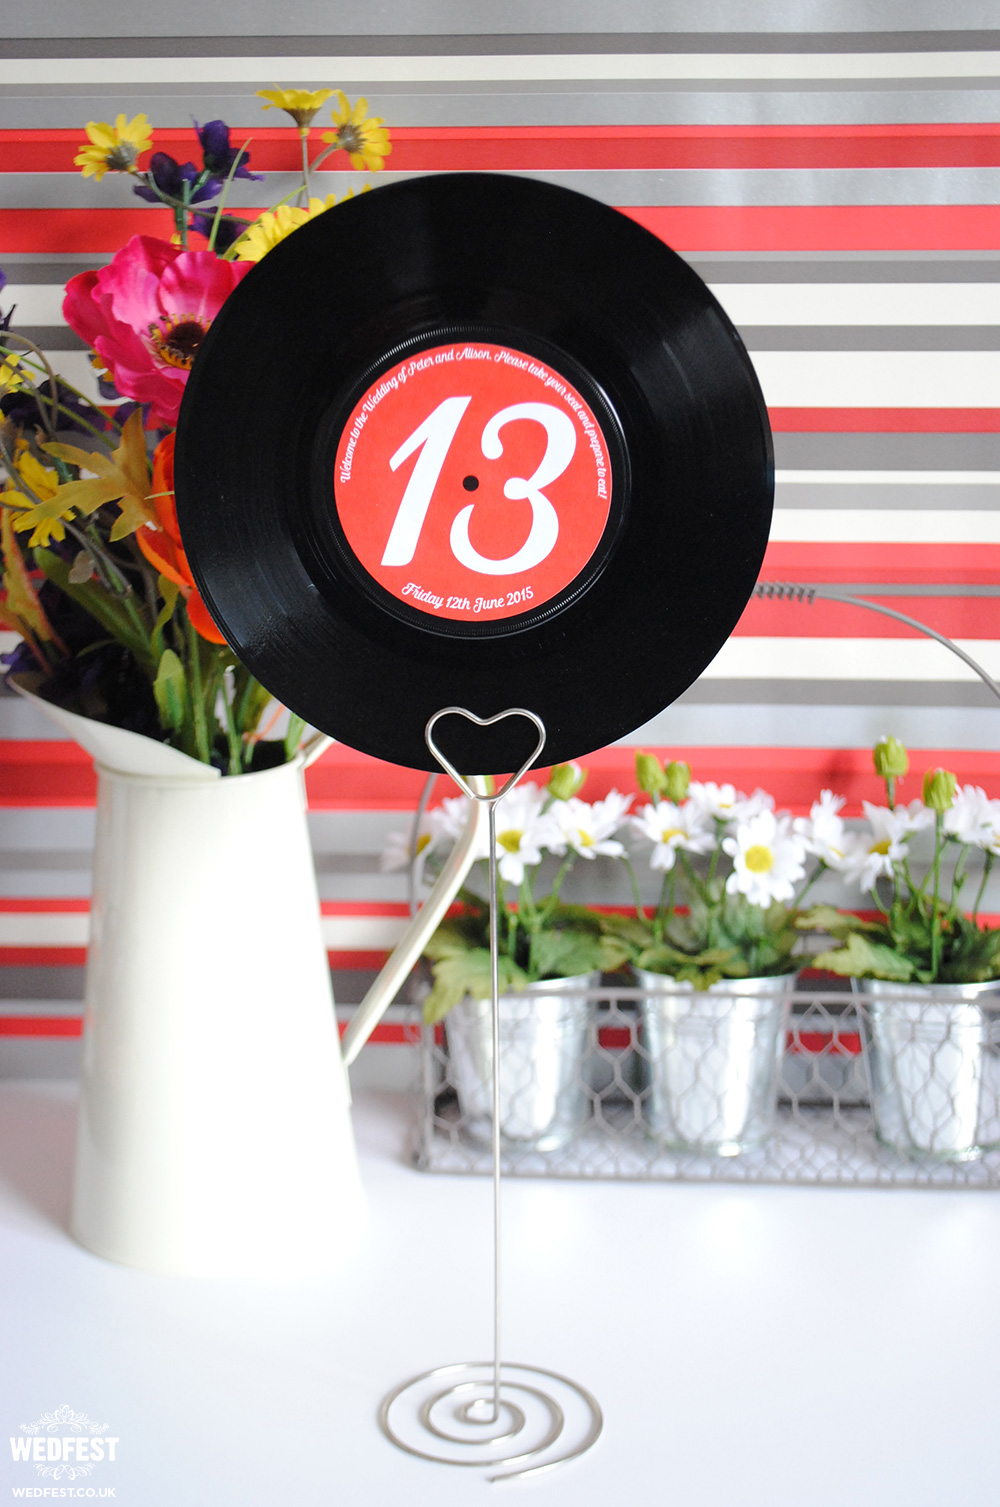 7 vinyl record wedding table names numbers wedfest for Vinyl record decoration ideas